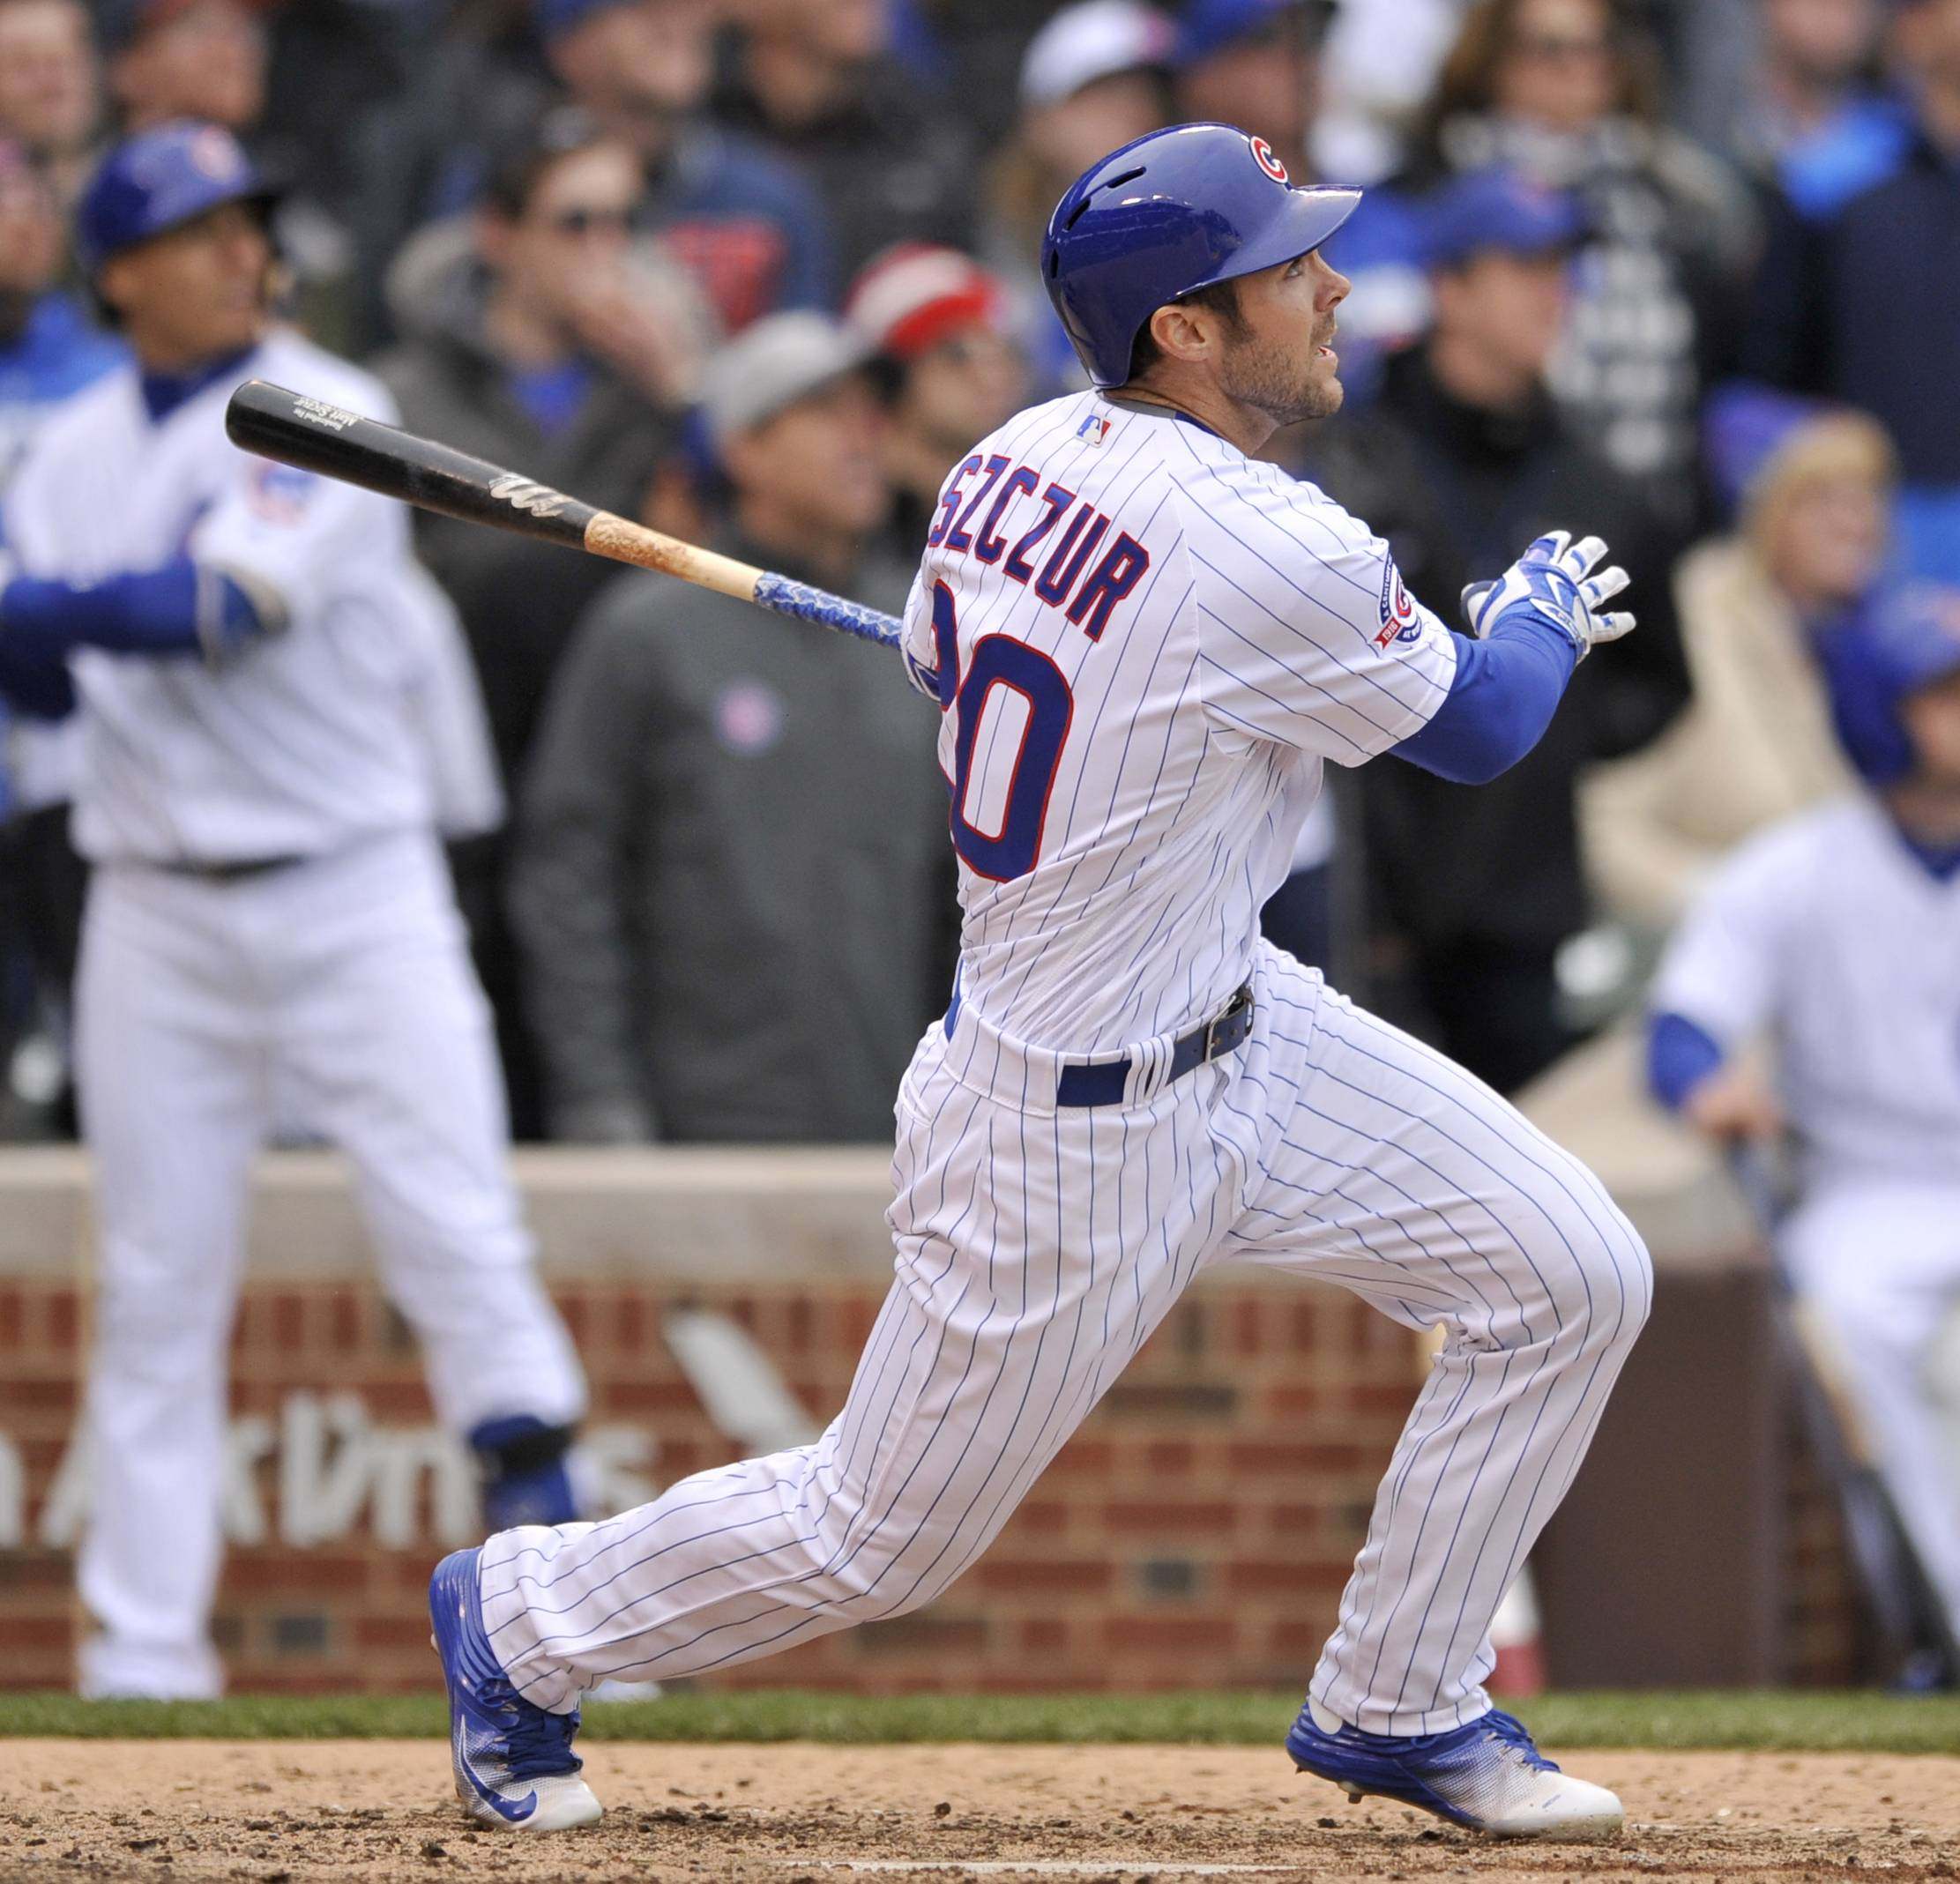 Matt Szczur hit his first career grand slam during a five-run eighth inning and the Chicago Cubs broke away from the Atlanta Braves 6-1 Friday at Wrigley Field.